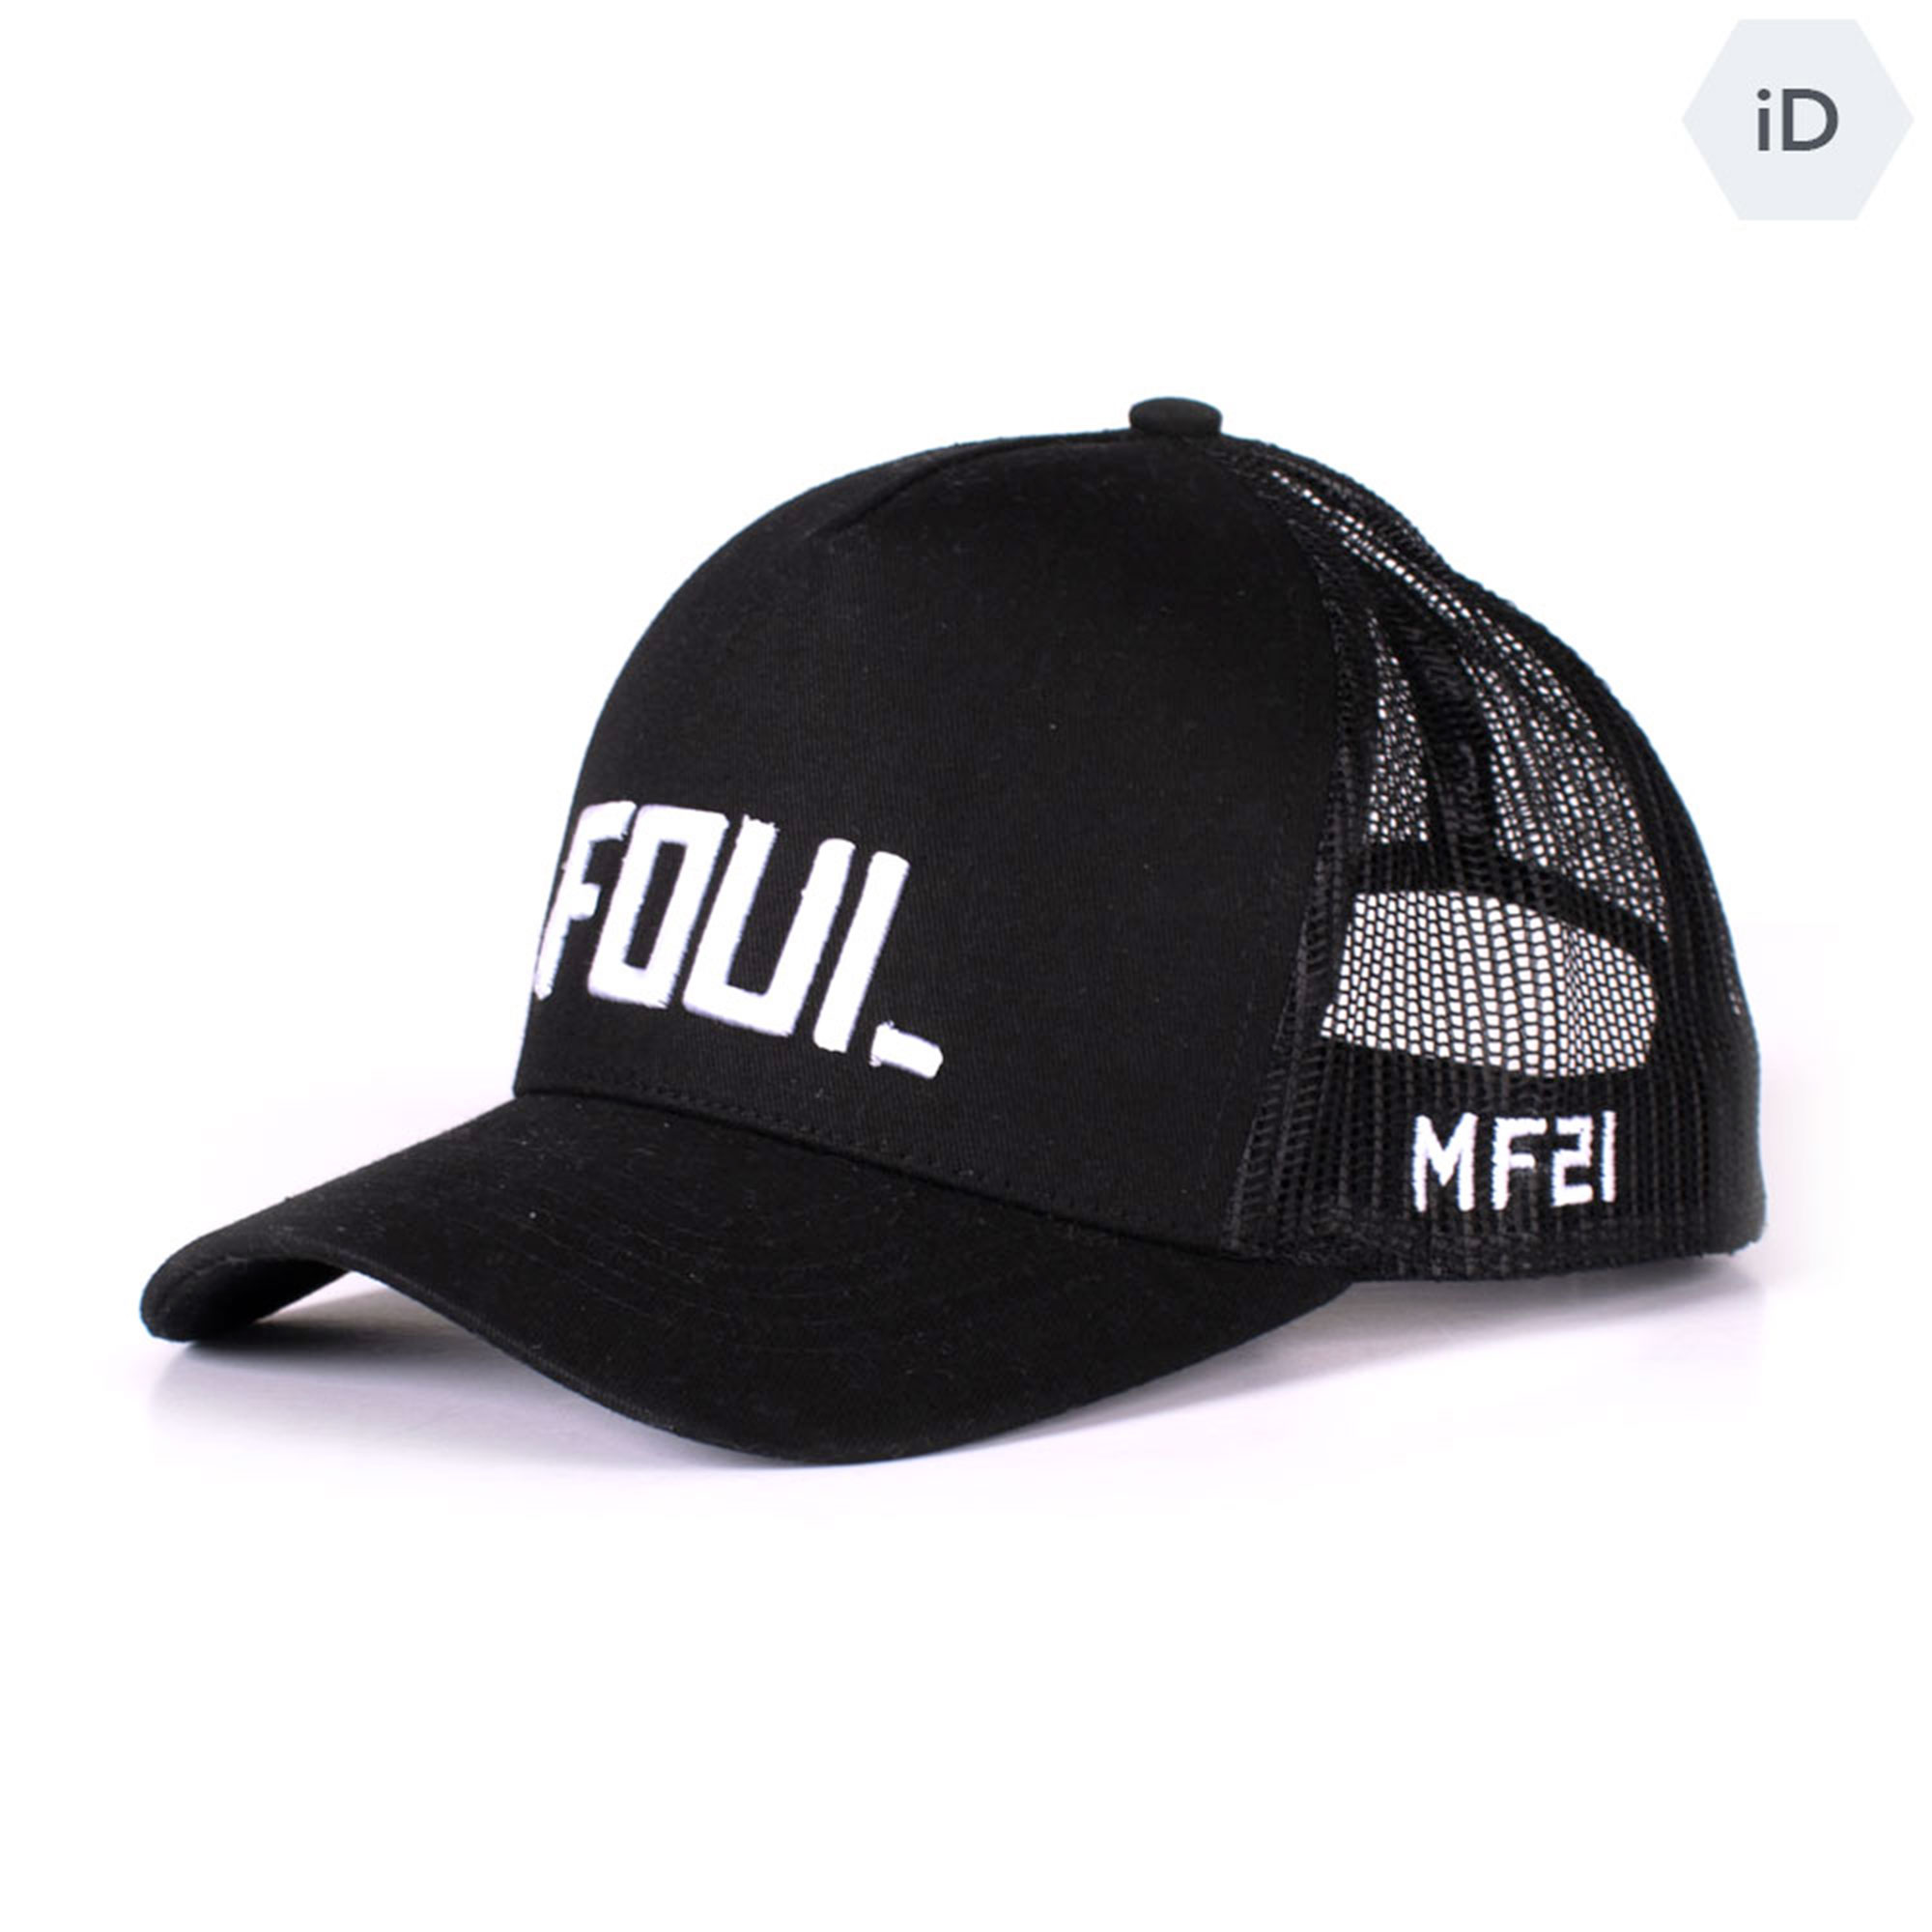 Trucker cap FOUL with ID(1)